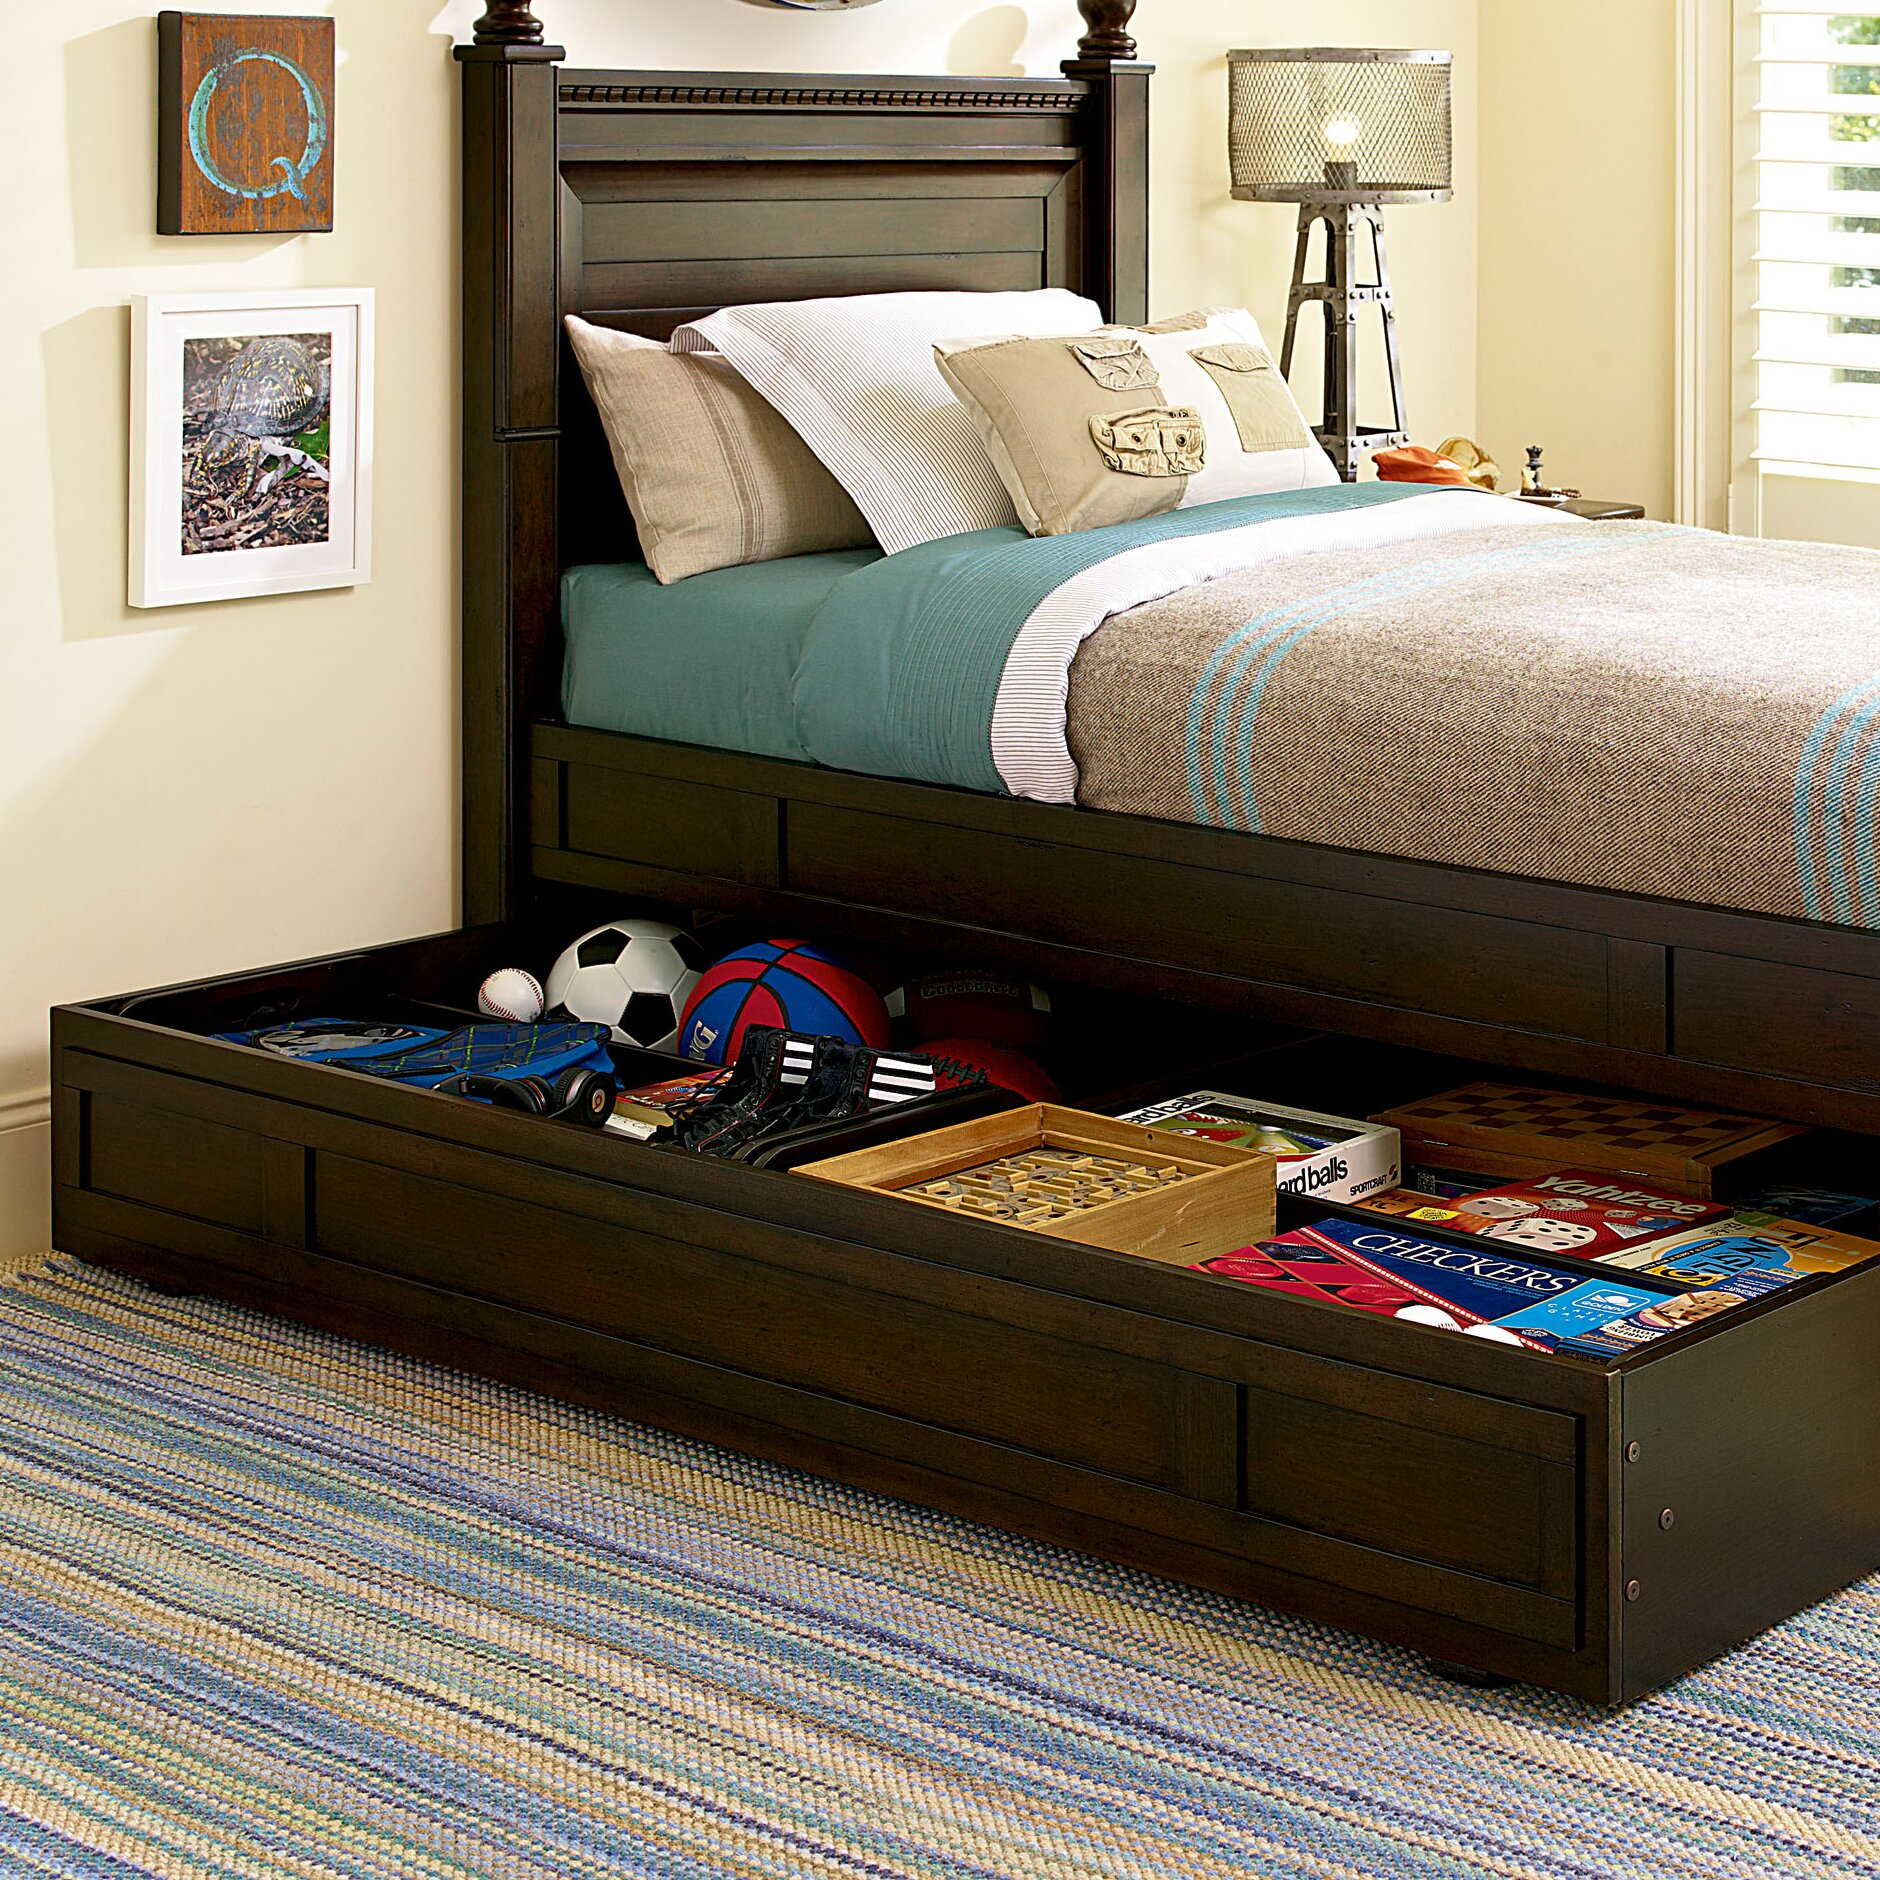 Smartstuff furniture paula deen kids panel customizable - Paula deen bedroom furniture collection ...